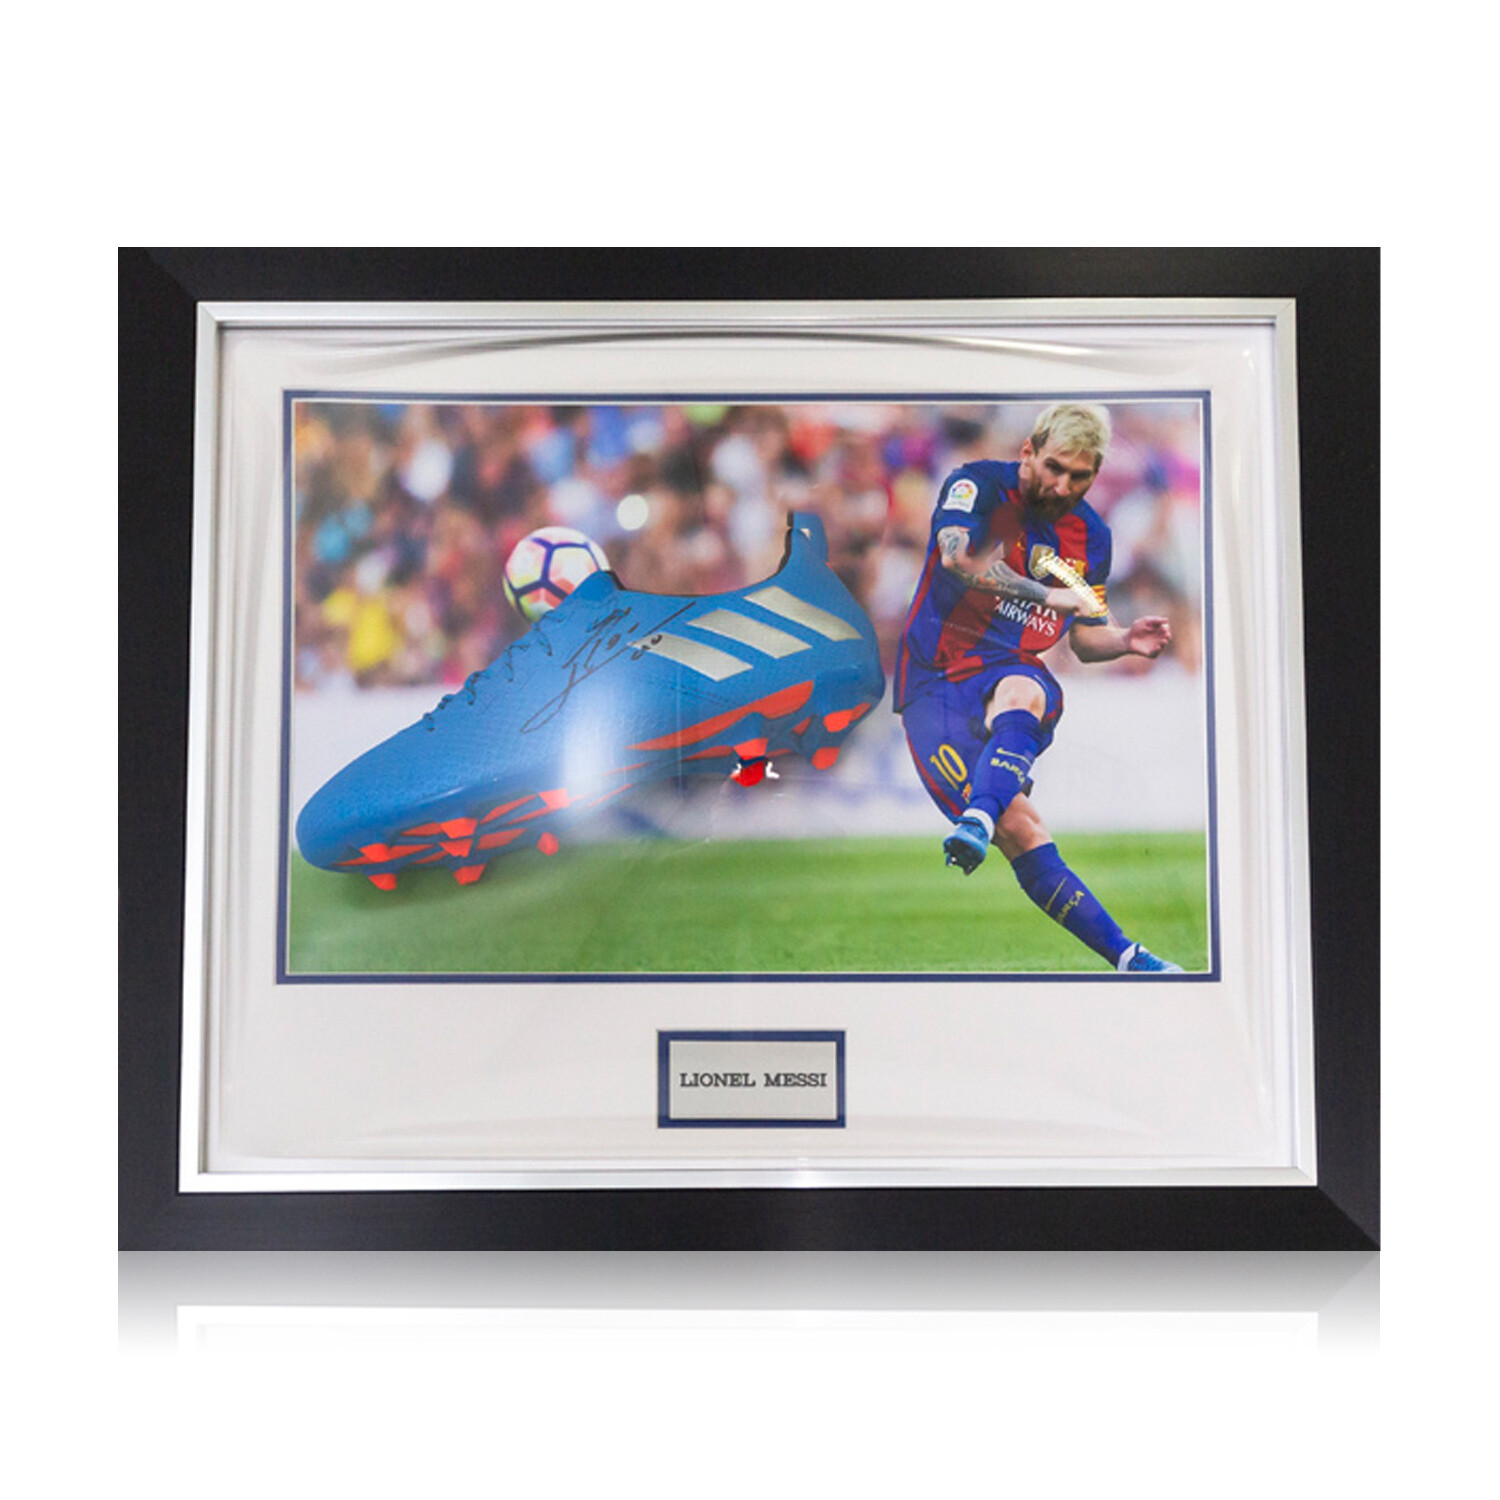 Lionel Messi Signed & Framed Adidas Boot